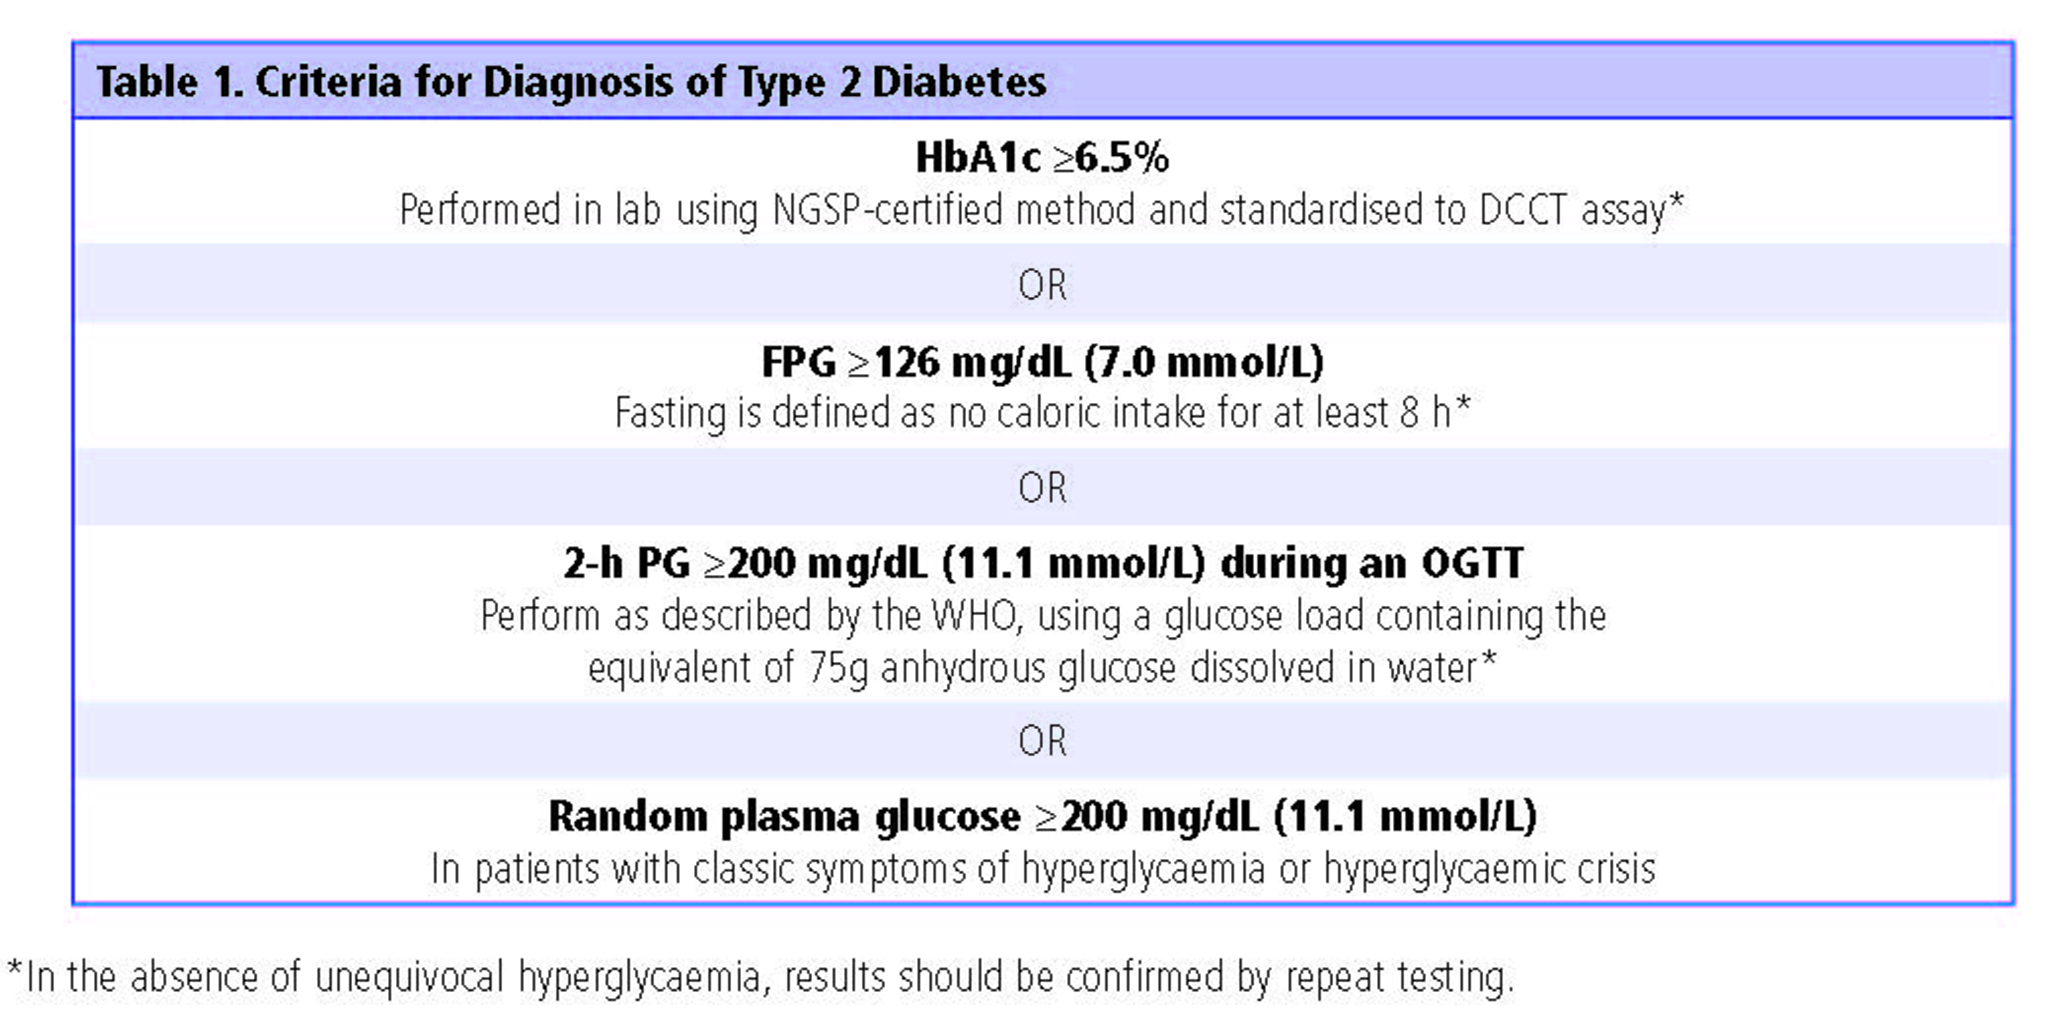 type 1 diabetes dating site | diabetes🔥 | is this what you are looking  type 1 diabetes dating site,secret not to tell anyone⭐️⭐️⭐️⭐️⭐️ help today.